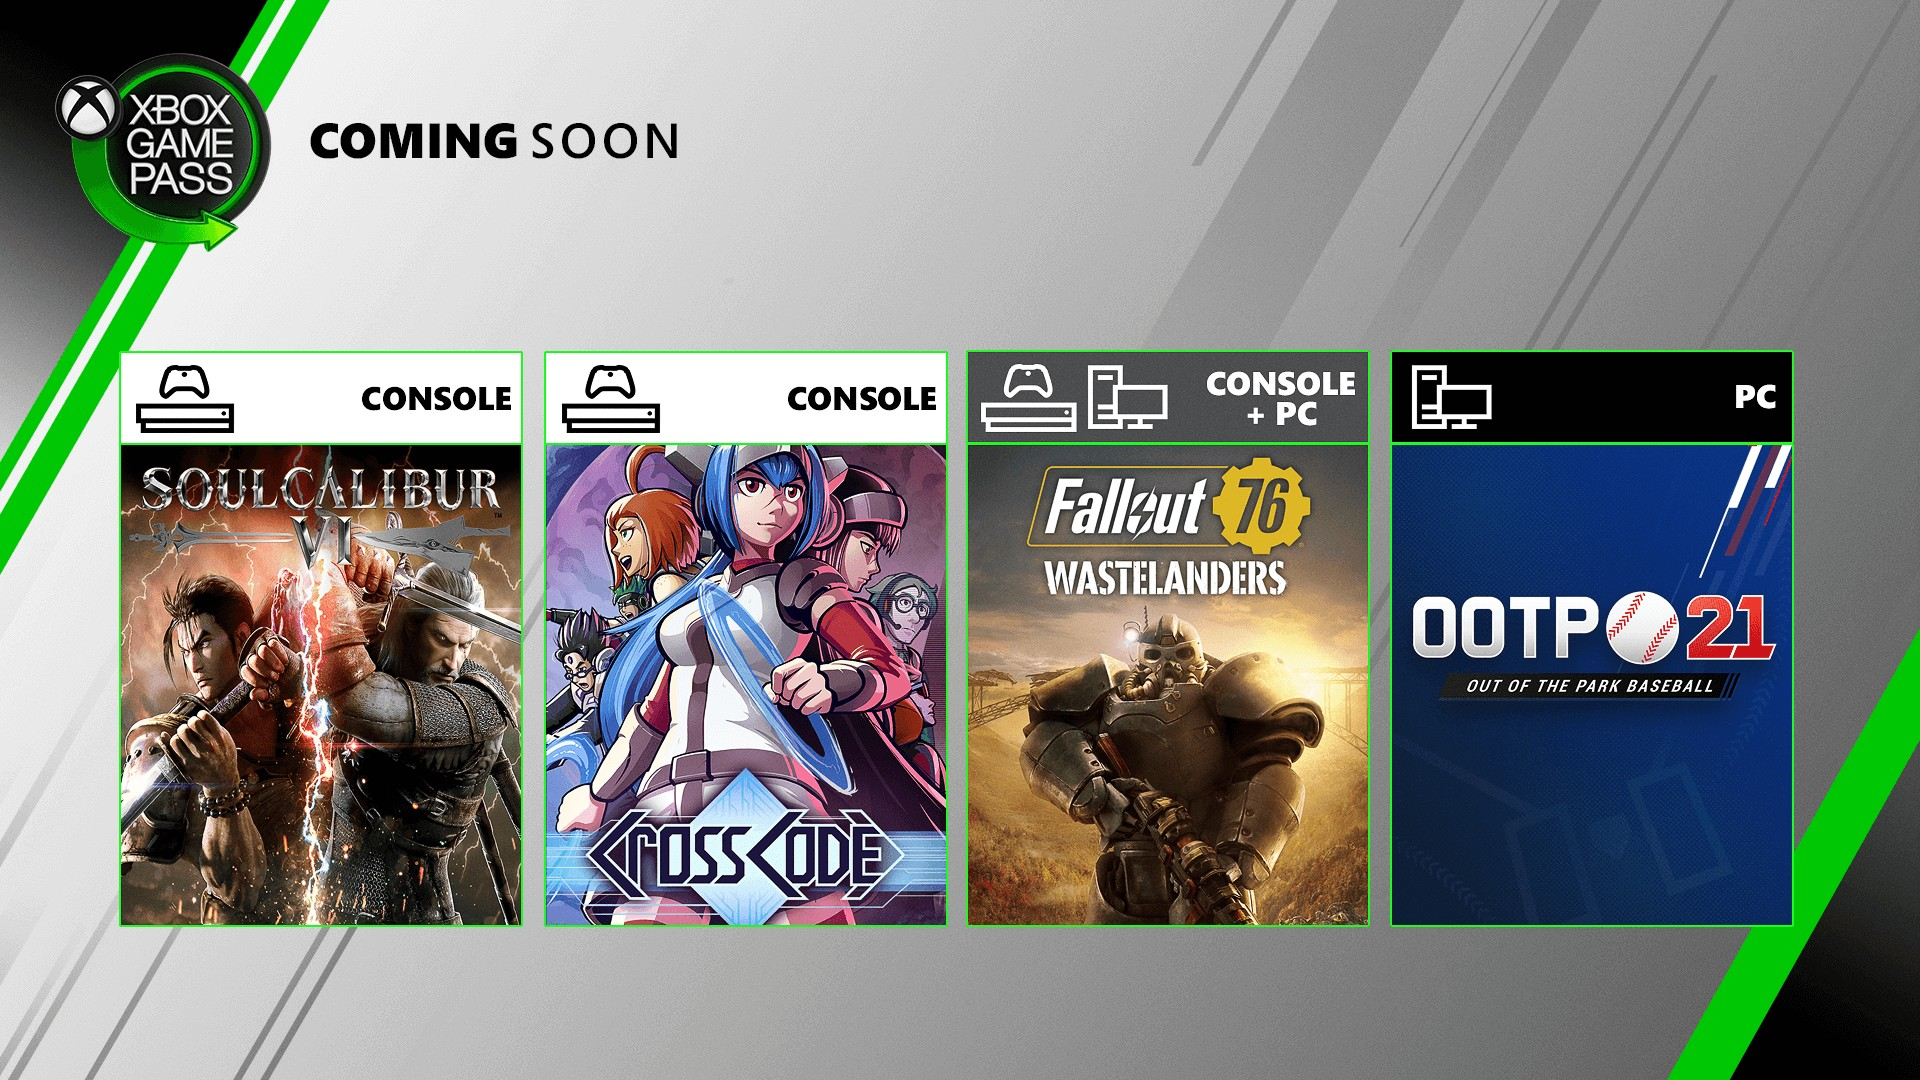 Xbox Game Pass adds Soulcalibur VI, Fallout 76, CrossCode, and Out of the Park Baseball 21 in July - Gematsu